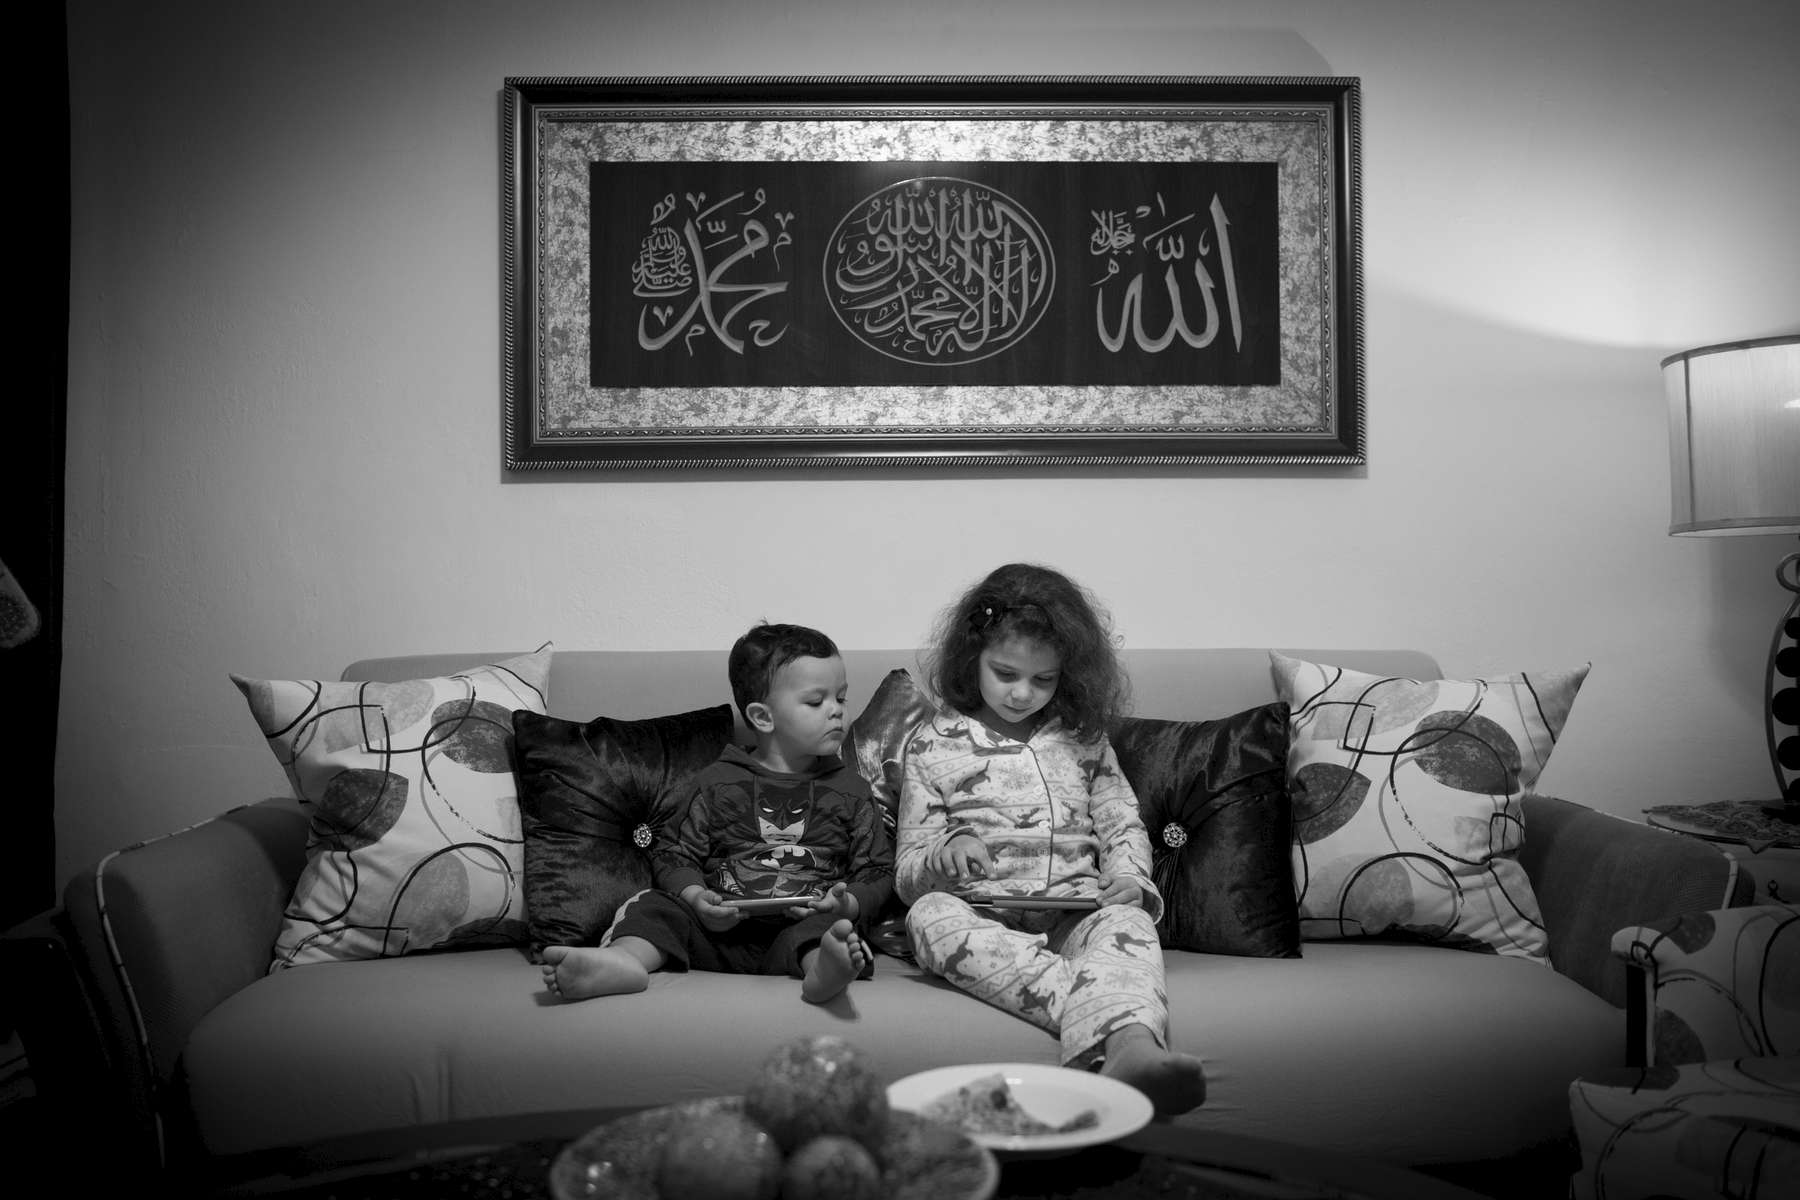 Souad and two-year-old Hassan play on mobile devices as they sit together on the living room sofa. Michael Appleton/Mayoral Photography Office